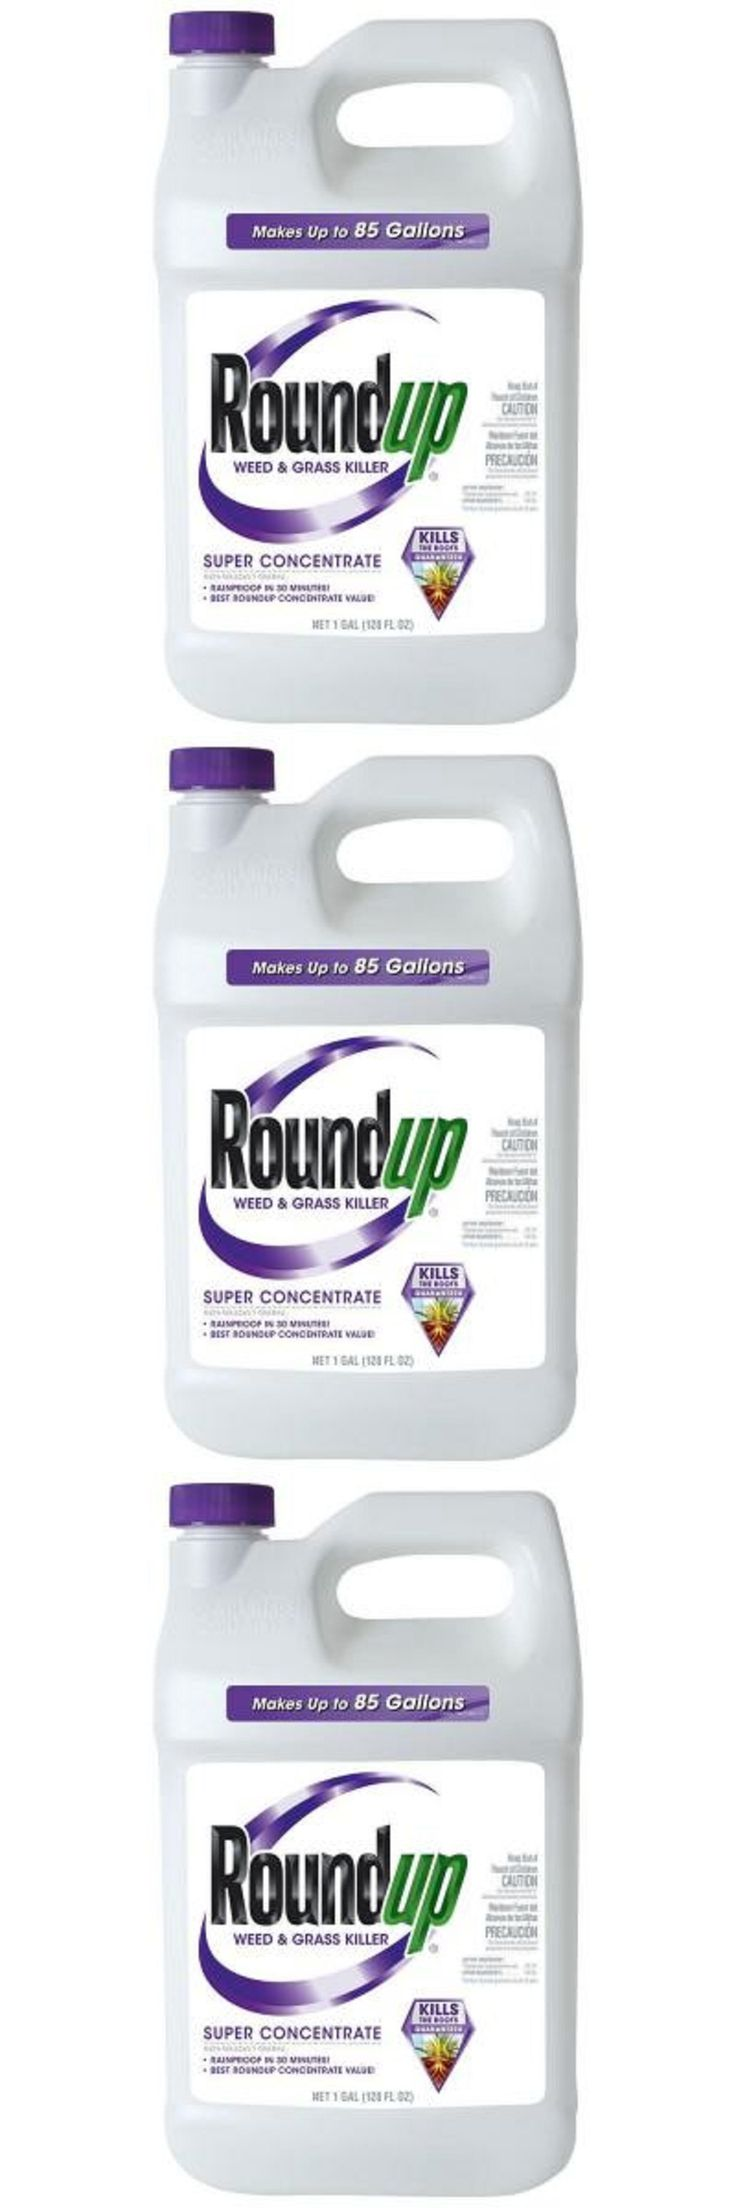 Weed Preventers 181050: Scotts Ortho Roundup 1 Gallon Super Concentrate Weed And Grass Killer 5004215 -> BUY IT NOW ONLY: $131.89 on eBay!